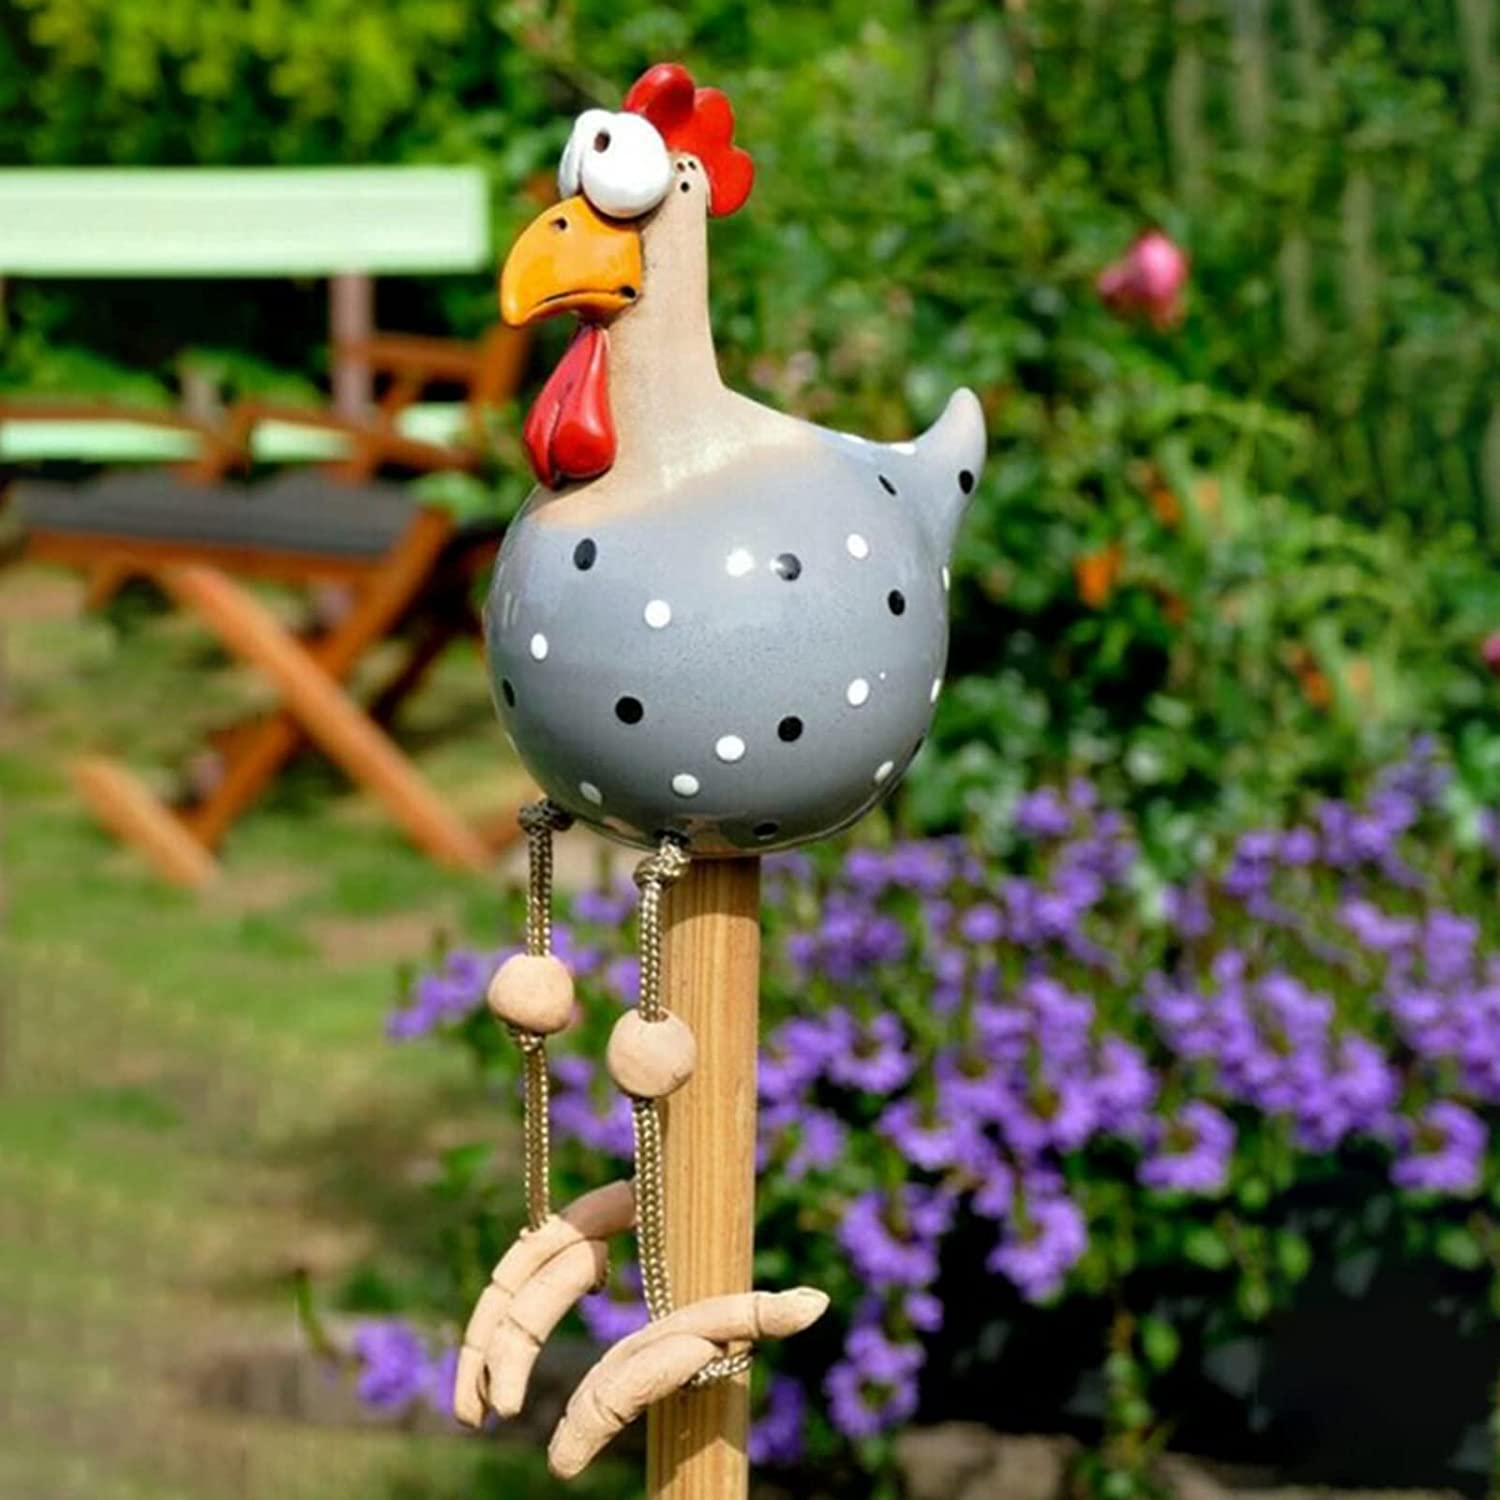 Funny Chicken Decor Yard Art, Resin Rooster Outdoor Statues Decorative Garden Stakes Resin Chicken Outdoor Statues Garden Animals Decor Farm Patio Yard Lawn Decoration Sculptures (Blue Grey)